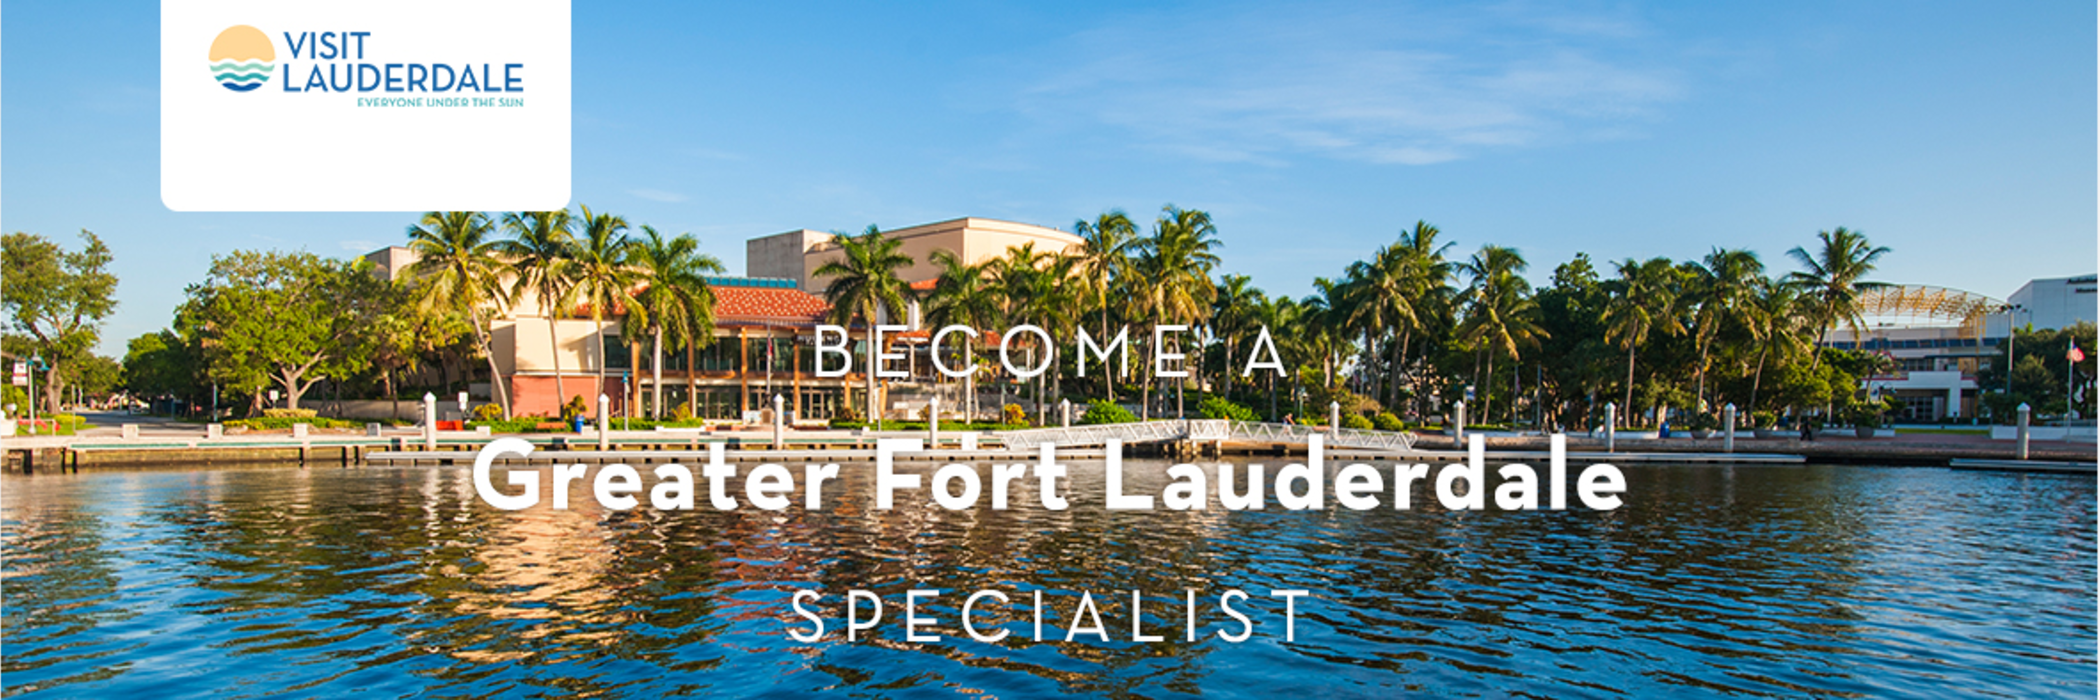 """An image of the Broward Center as seen from the New River, with text saying, """"Become a Greater Fort Lauderdale Specialist"""""""